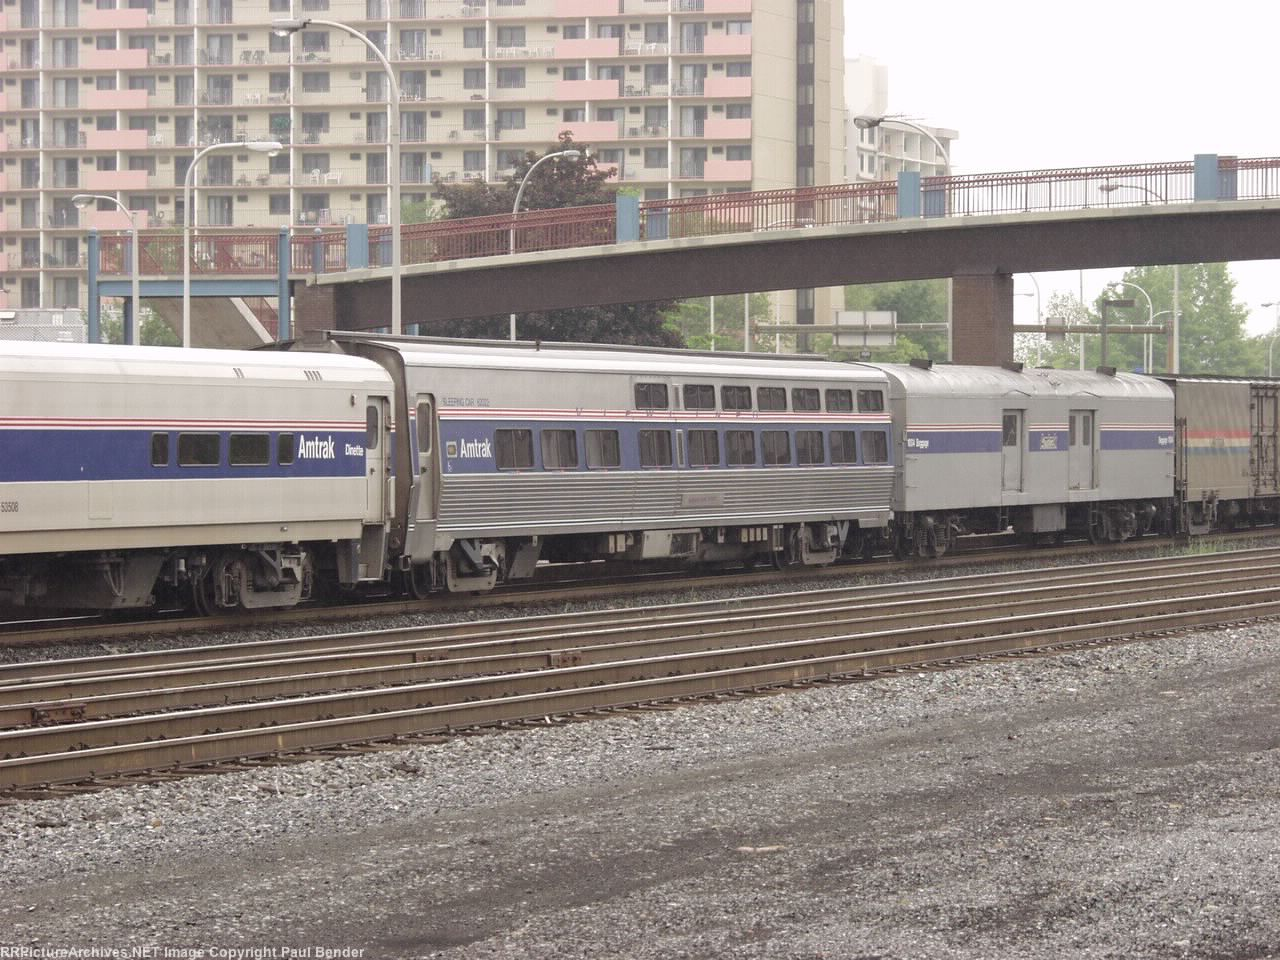 A viewliner Sleeper in the Three Rivers